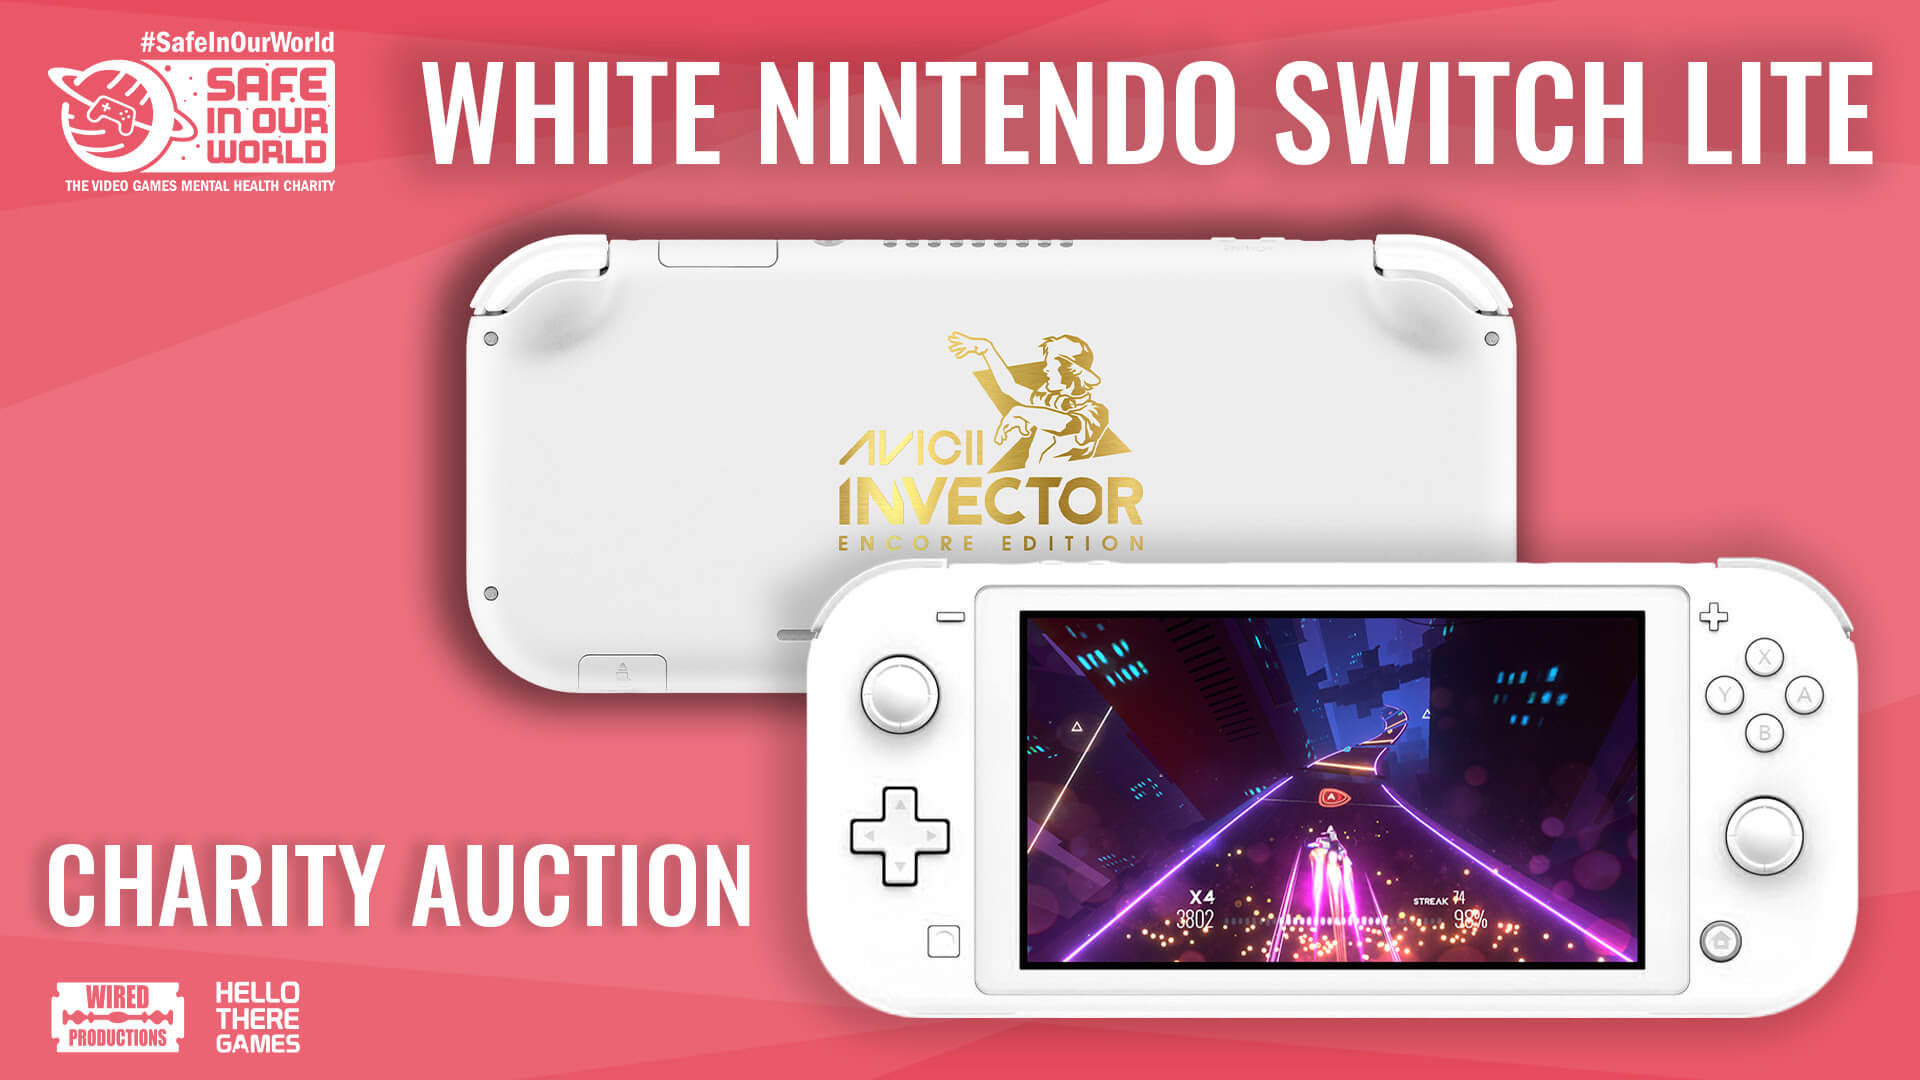 Win A Rare Custom White Switch Lite By Donating To Charity